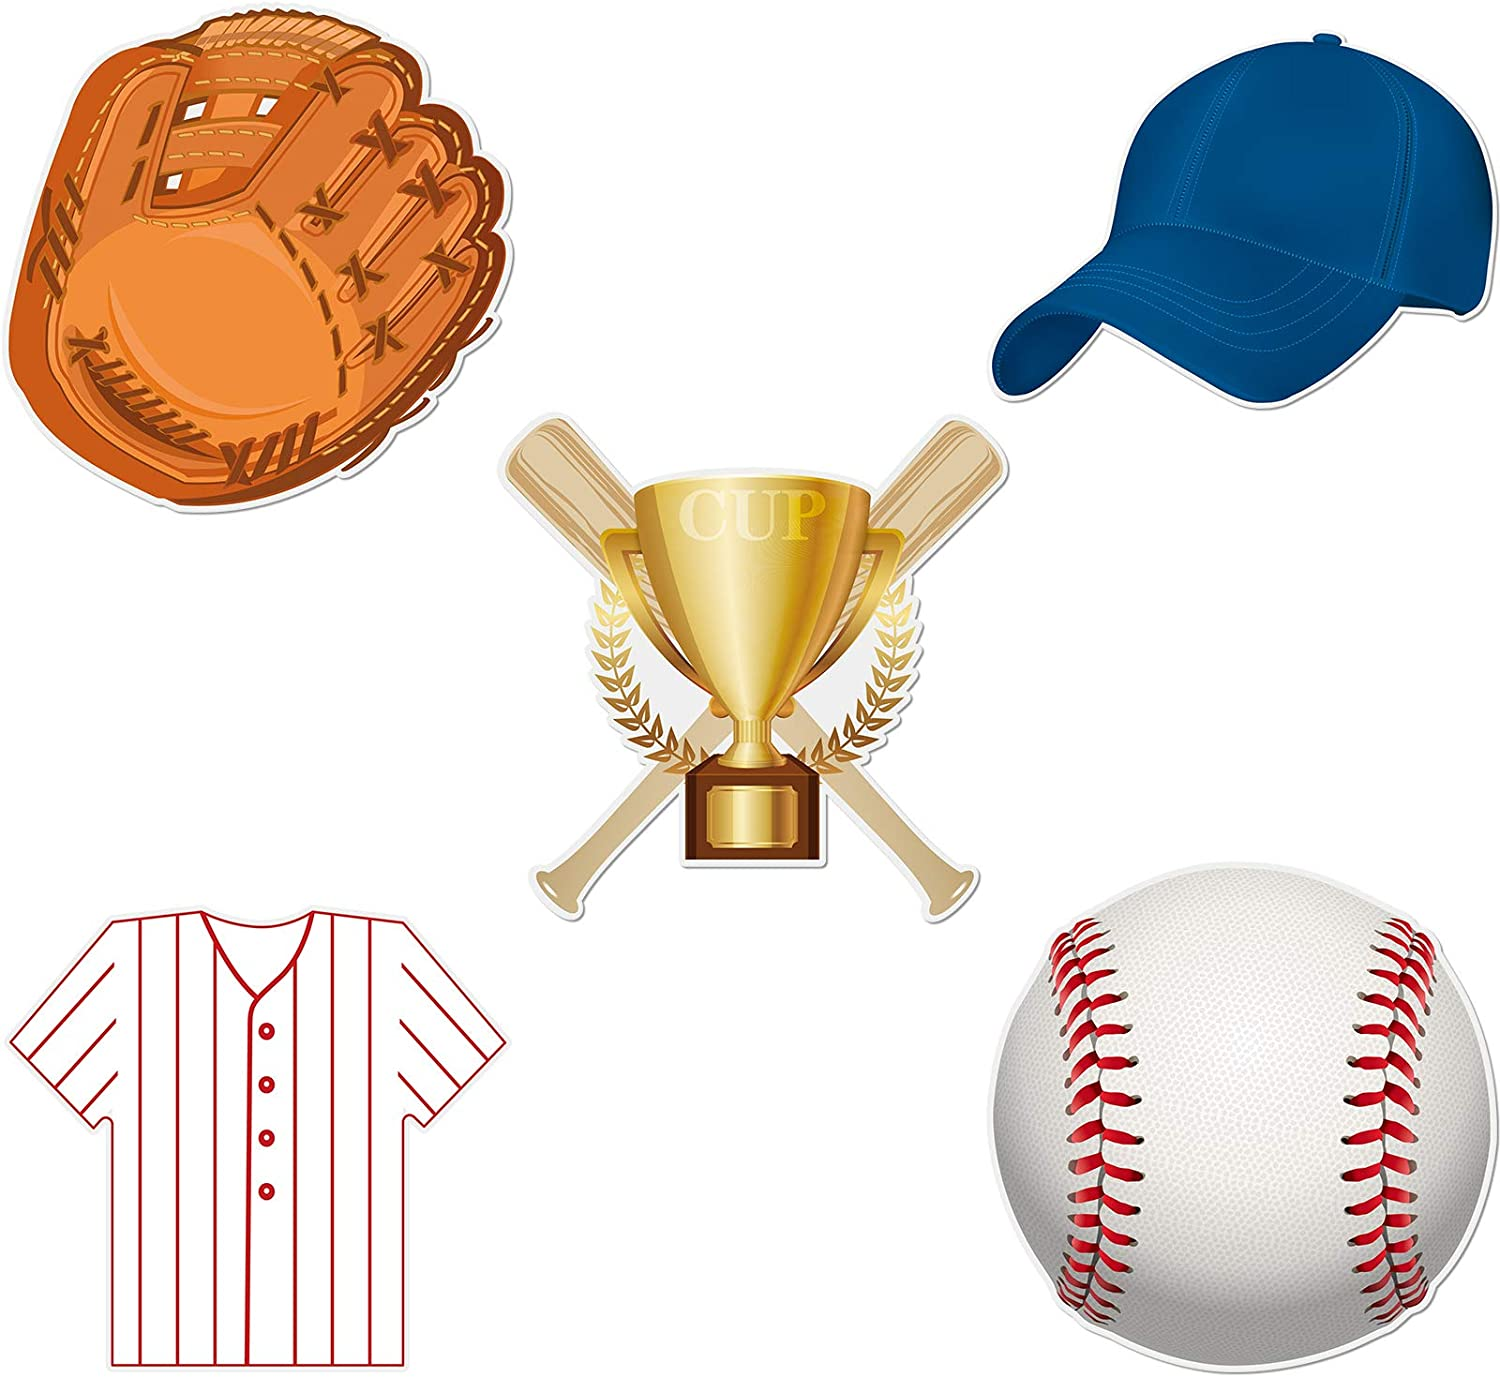 45 Pieces Baseball Paper Cut Outs Versatile Classroom Decoration Sports Themed Cut-Outs with Glue Point Dots for Bulletin Board Classroom School Sports Theme Birthday Party Decoration, 5.9 x 5.9 Inch